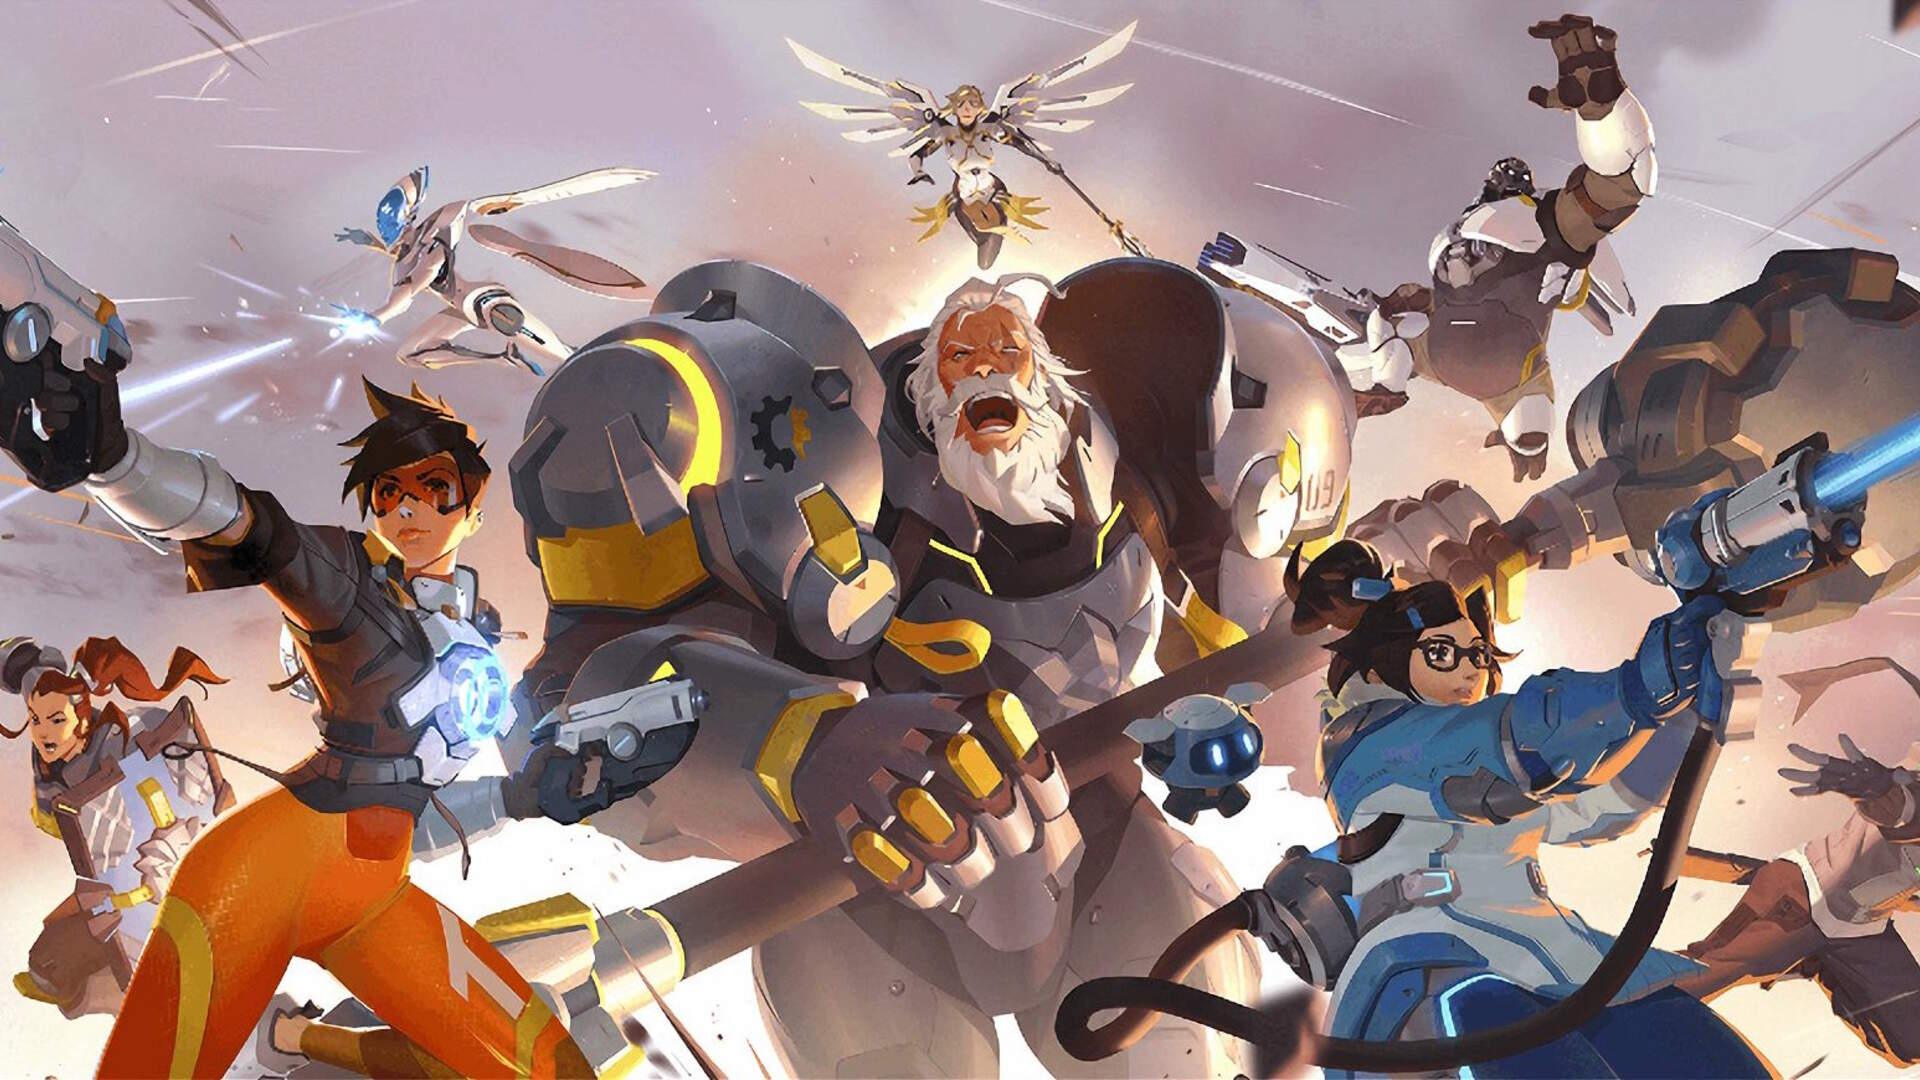 New Overwatch 2 Art Leaks on Blizzard's Website